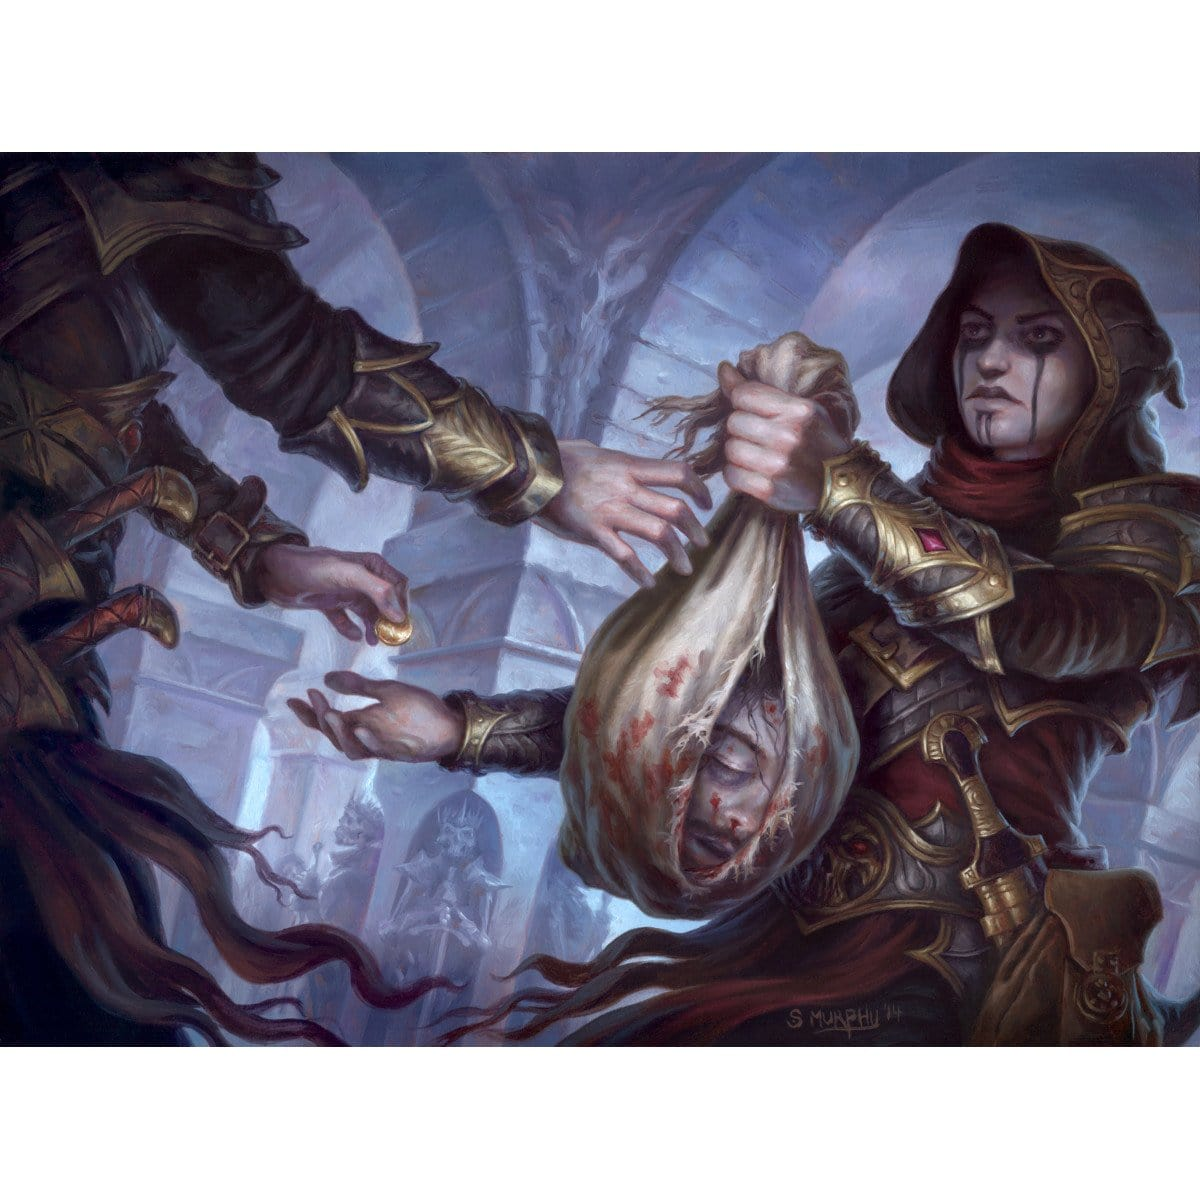 Ultimate Price Print - Print - Original Magic Art - Accessories for Magic the Gathering and other card games